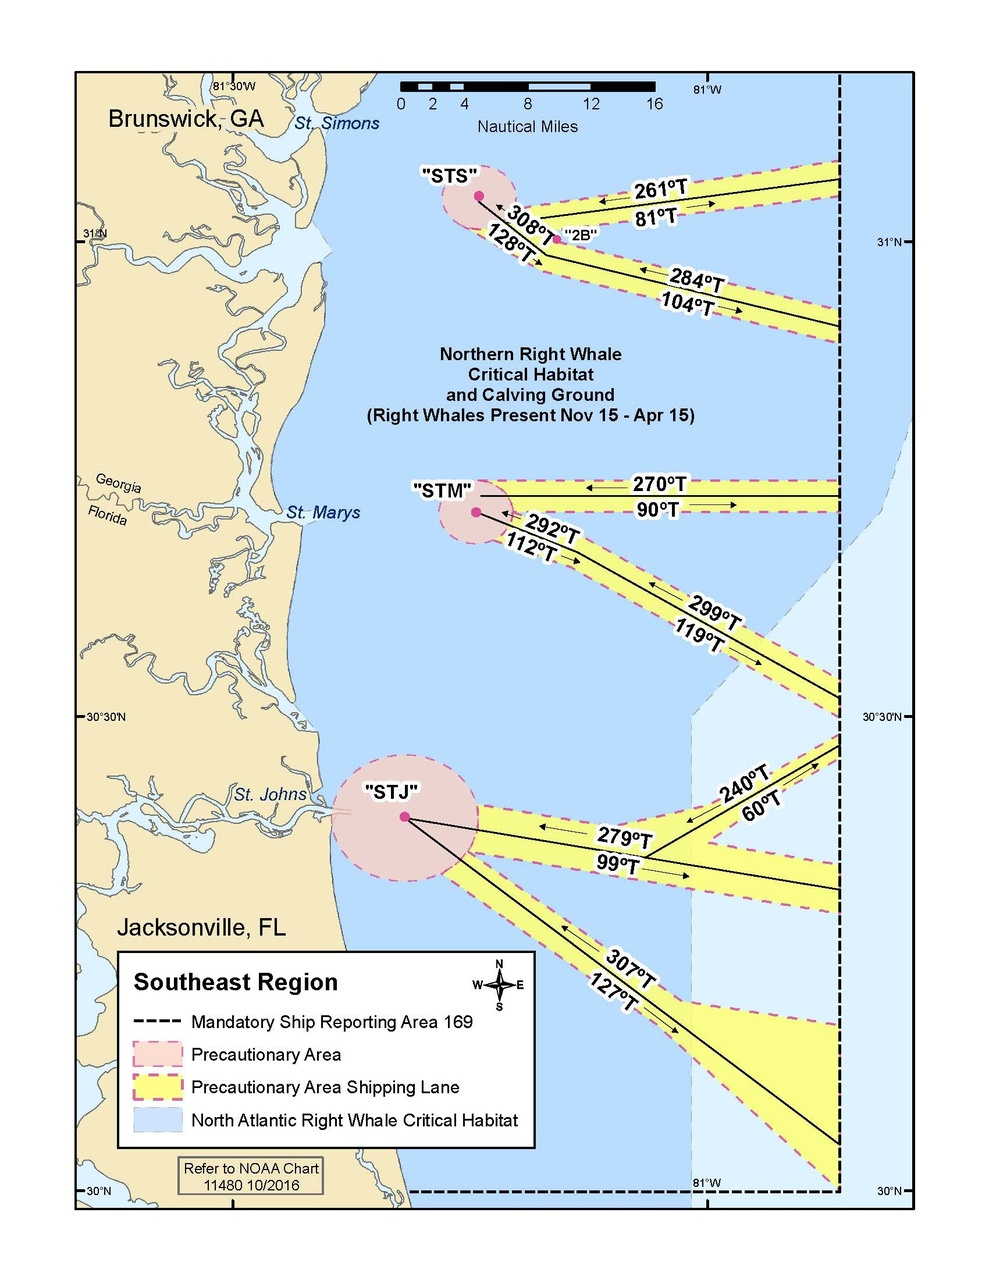 This is a map of recommended shipping lanes to protect whales in the Southeast Region.